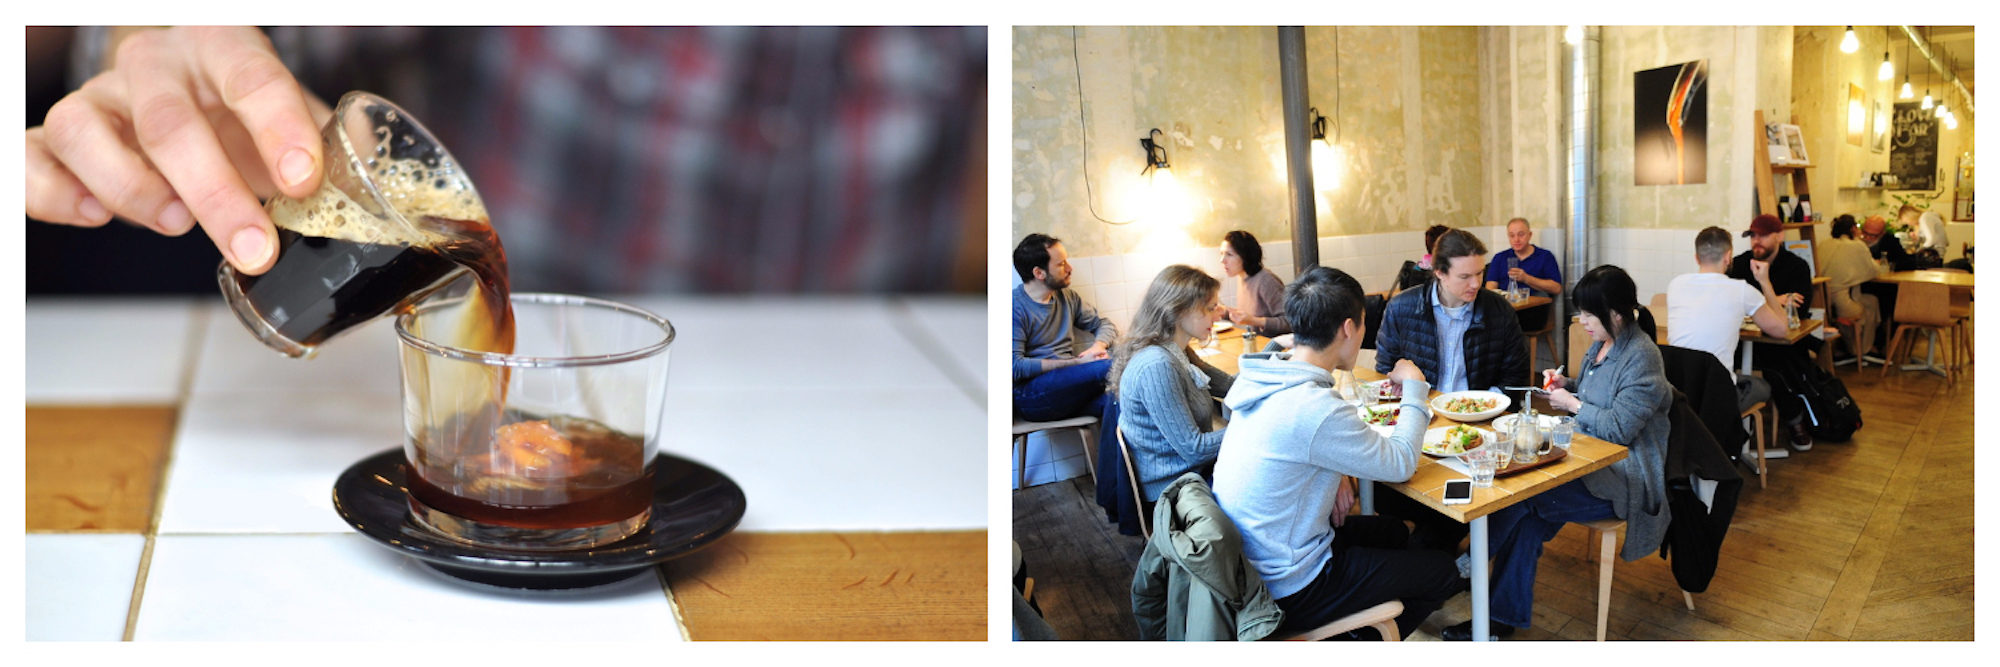 Someone serving coffee into a glass cup on a tiled counter at gluten-free Paris coffee shop Coutume (left). Inside gluten-free Paris coffee shop Coutume with people enjoying breakfast (right).